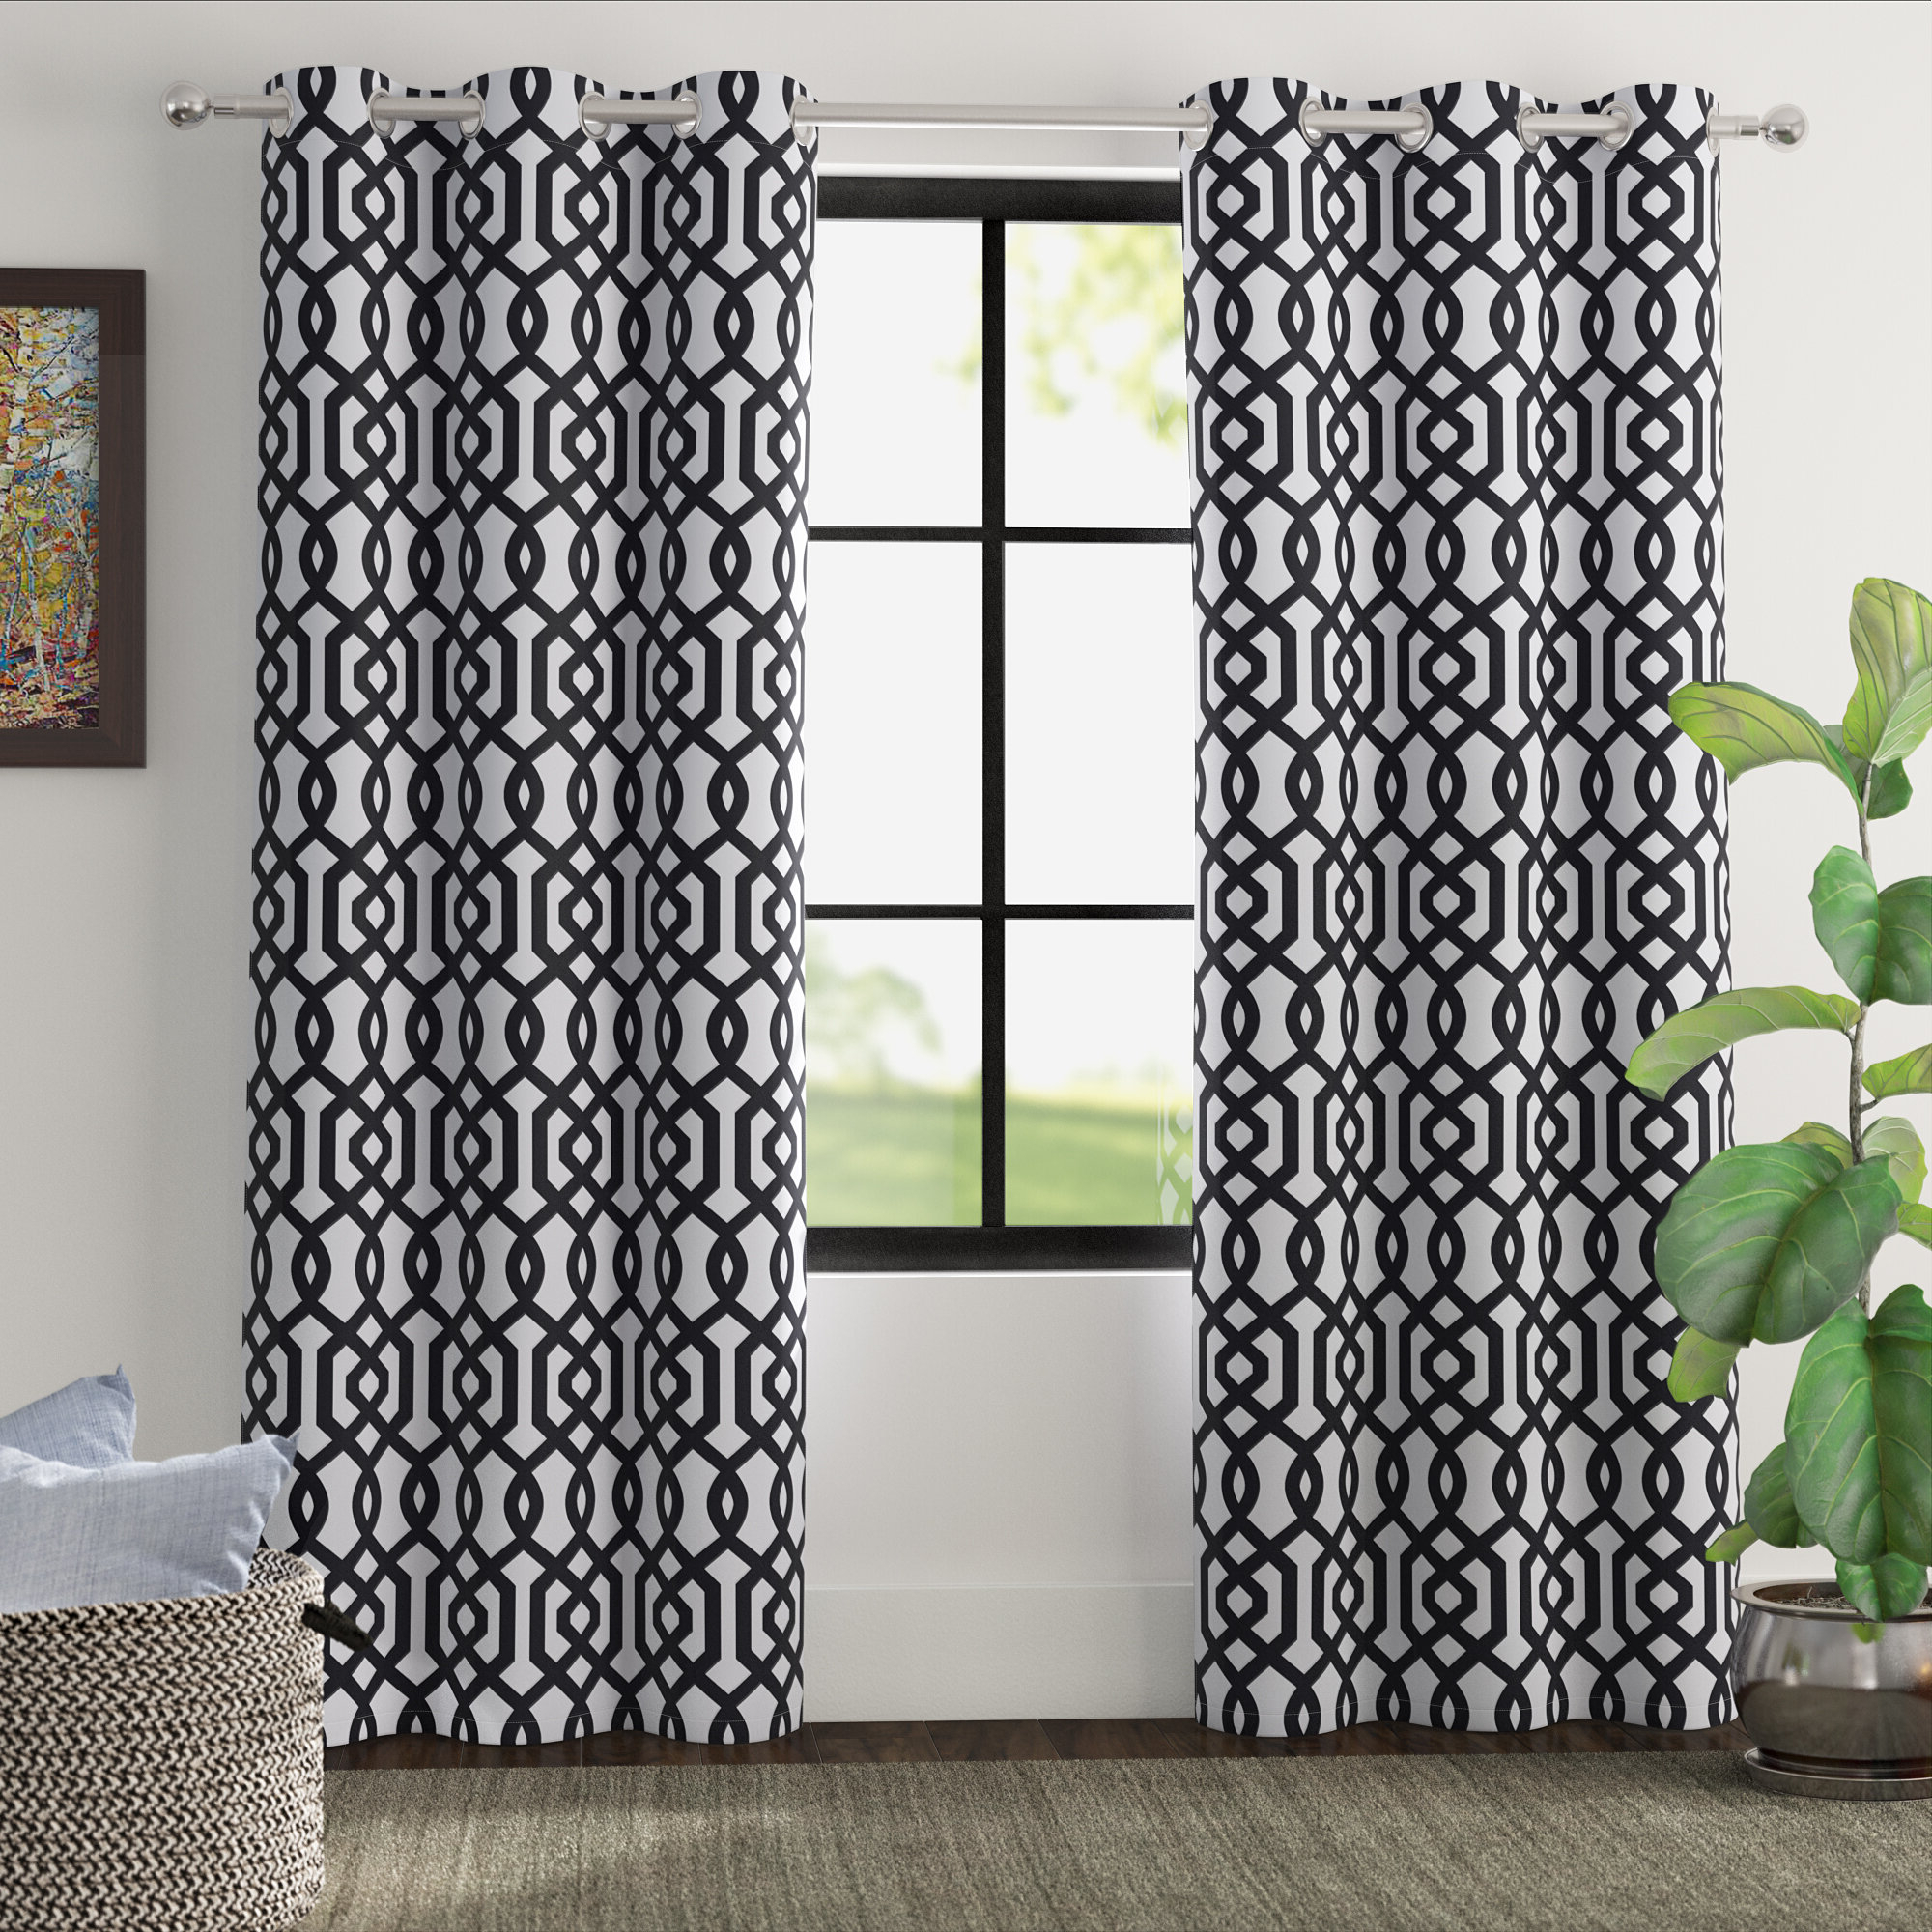 Newest Primebeau Geometric Pattern Blackout Curtain Pairs Intended For Grommet Curtain Patterns (View 14 of 20)